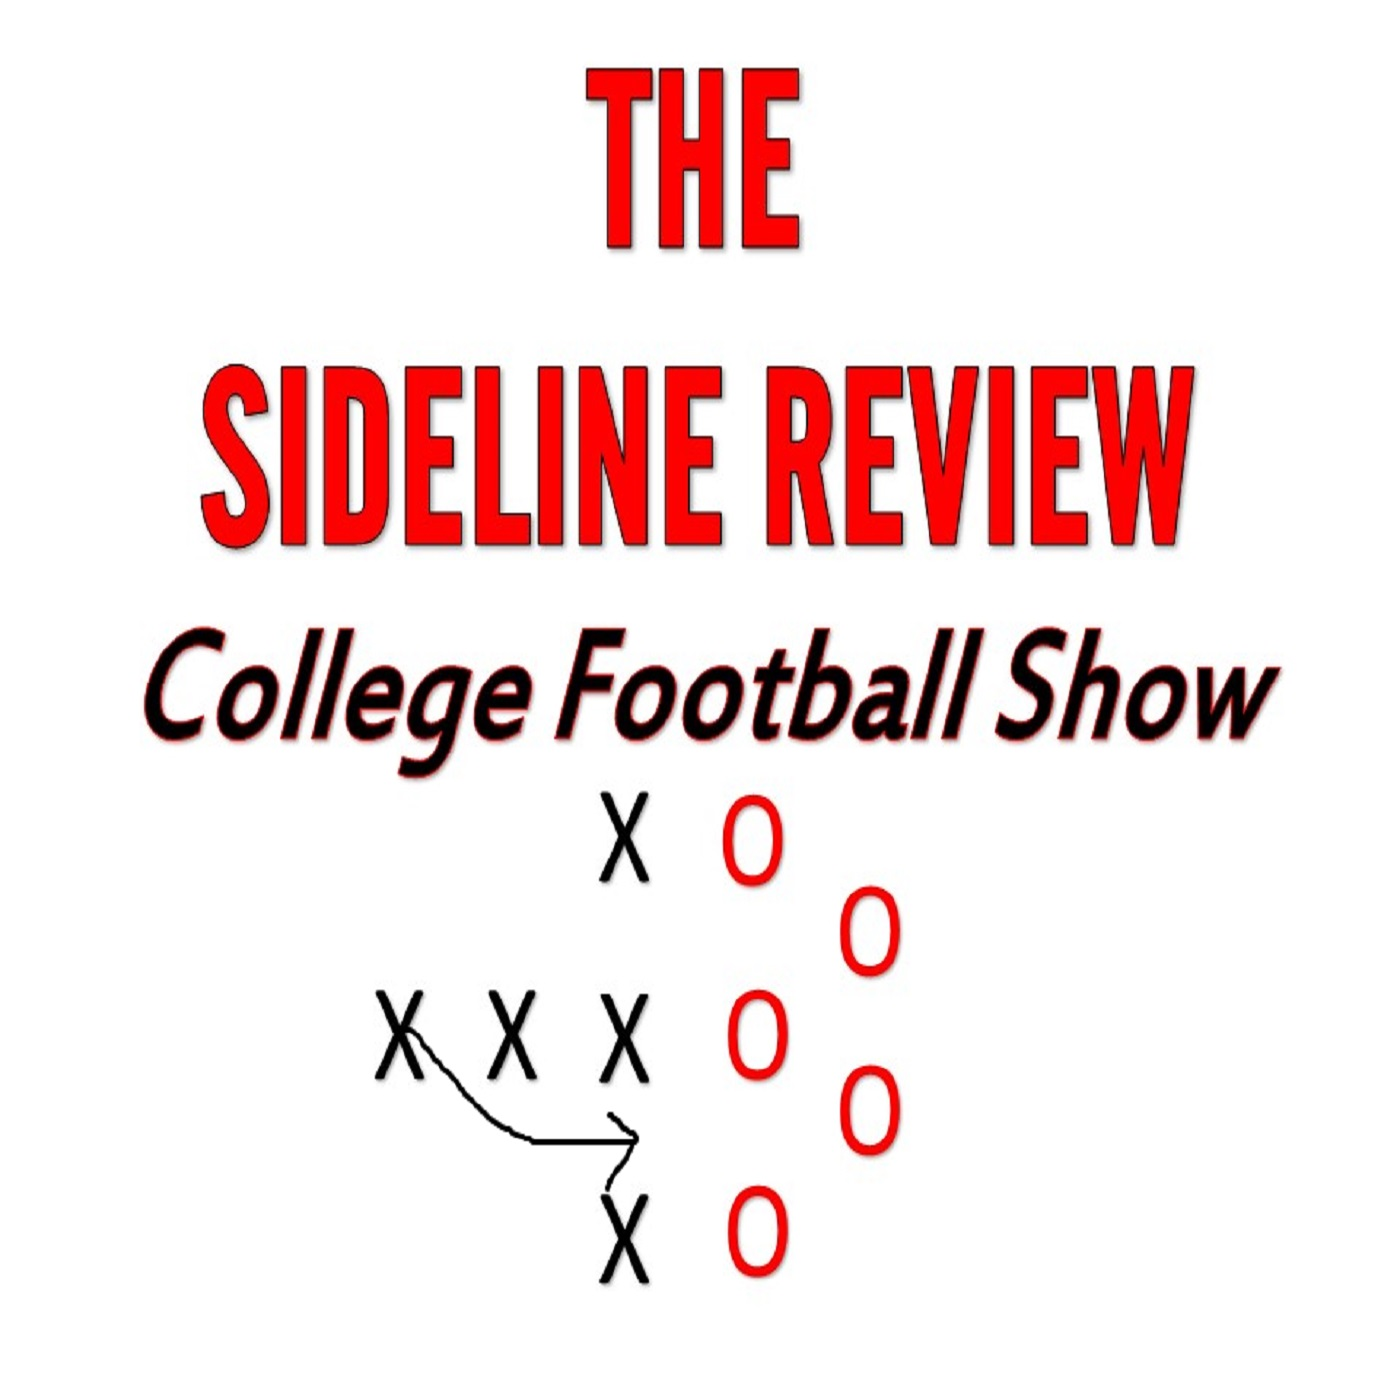 The Sideline Review College Football Show